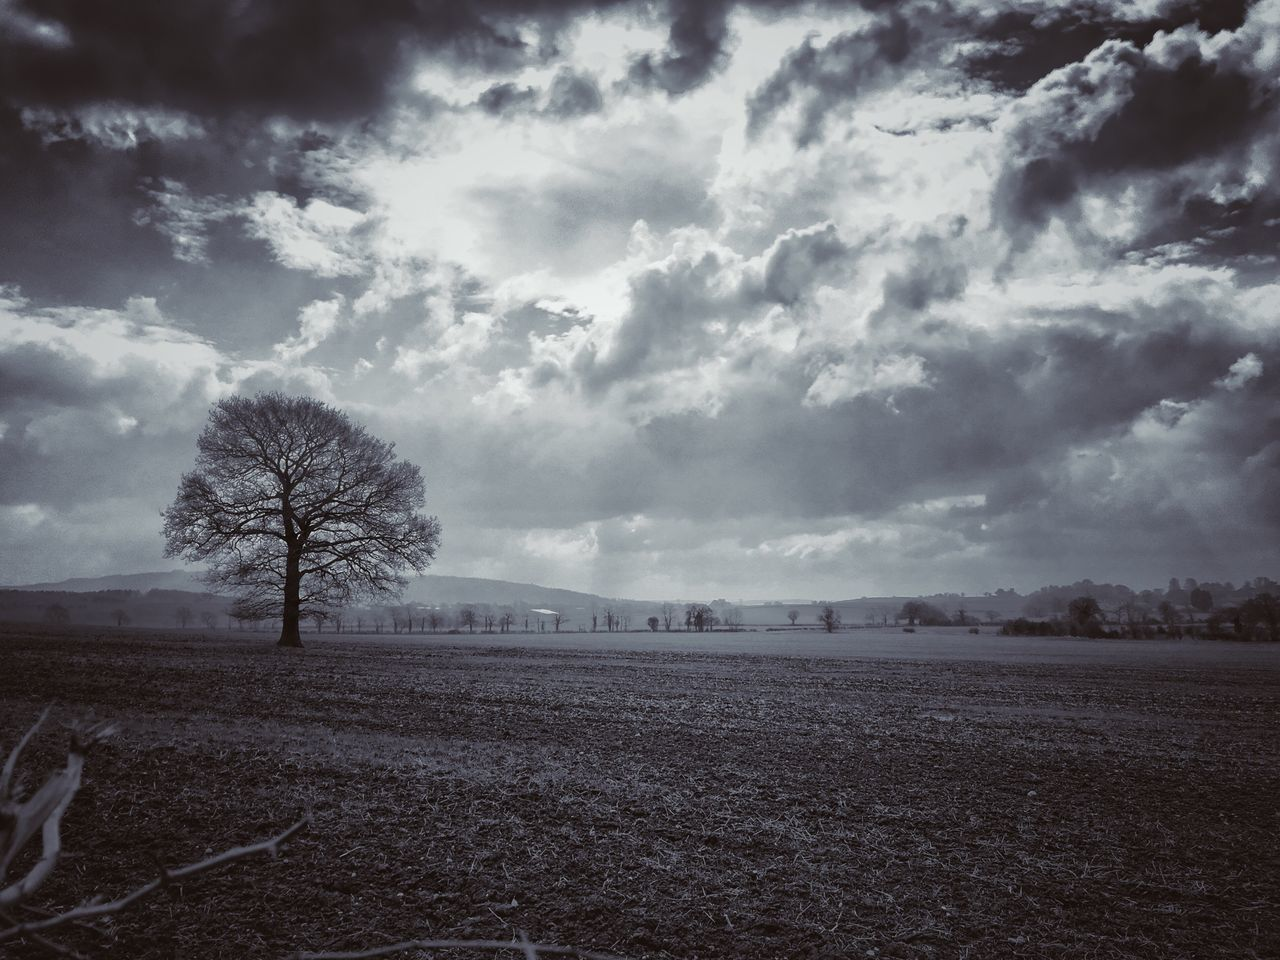 Fantastic opportunity to capture this shot while the sun was trying to pierce through the clouds __________________________________________________ Follow me on: www.facebook.com/jgphotographyofficial www.instagram.com/jg.photography.official __________________________________________________ #landscapephotography #landscape_captures #getoutdoors #takeahike #hikingadventures #hiking #countryside #fields #trees #nature #earthpix #moodygrams #travel #worcester #worcestershire #fantastic_earth #iPhoneography #Iphonephotography #iphone6splus #iphoneonly #Photography #Instagram #photooftheday #instadaily #apple #Explore #Adventure #nolenses #adobe #snapseed #snapshot by @jg.photography.official Sky Cloud - Sky Field Nature Tree Landscape Tranquility Rural Scene Scenics Beauty In Nature Agriculture Tranquil Scene No People Outdoors Growth Day Iphone6splus Apple IPhoneography